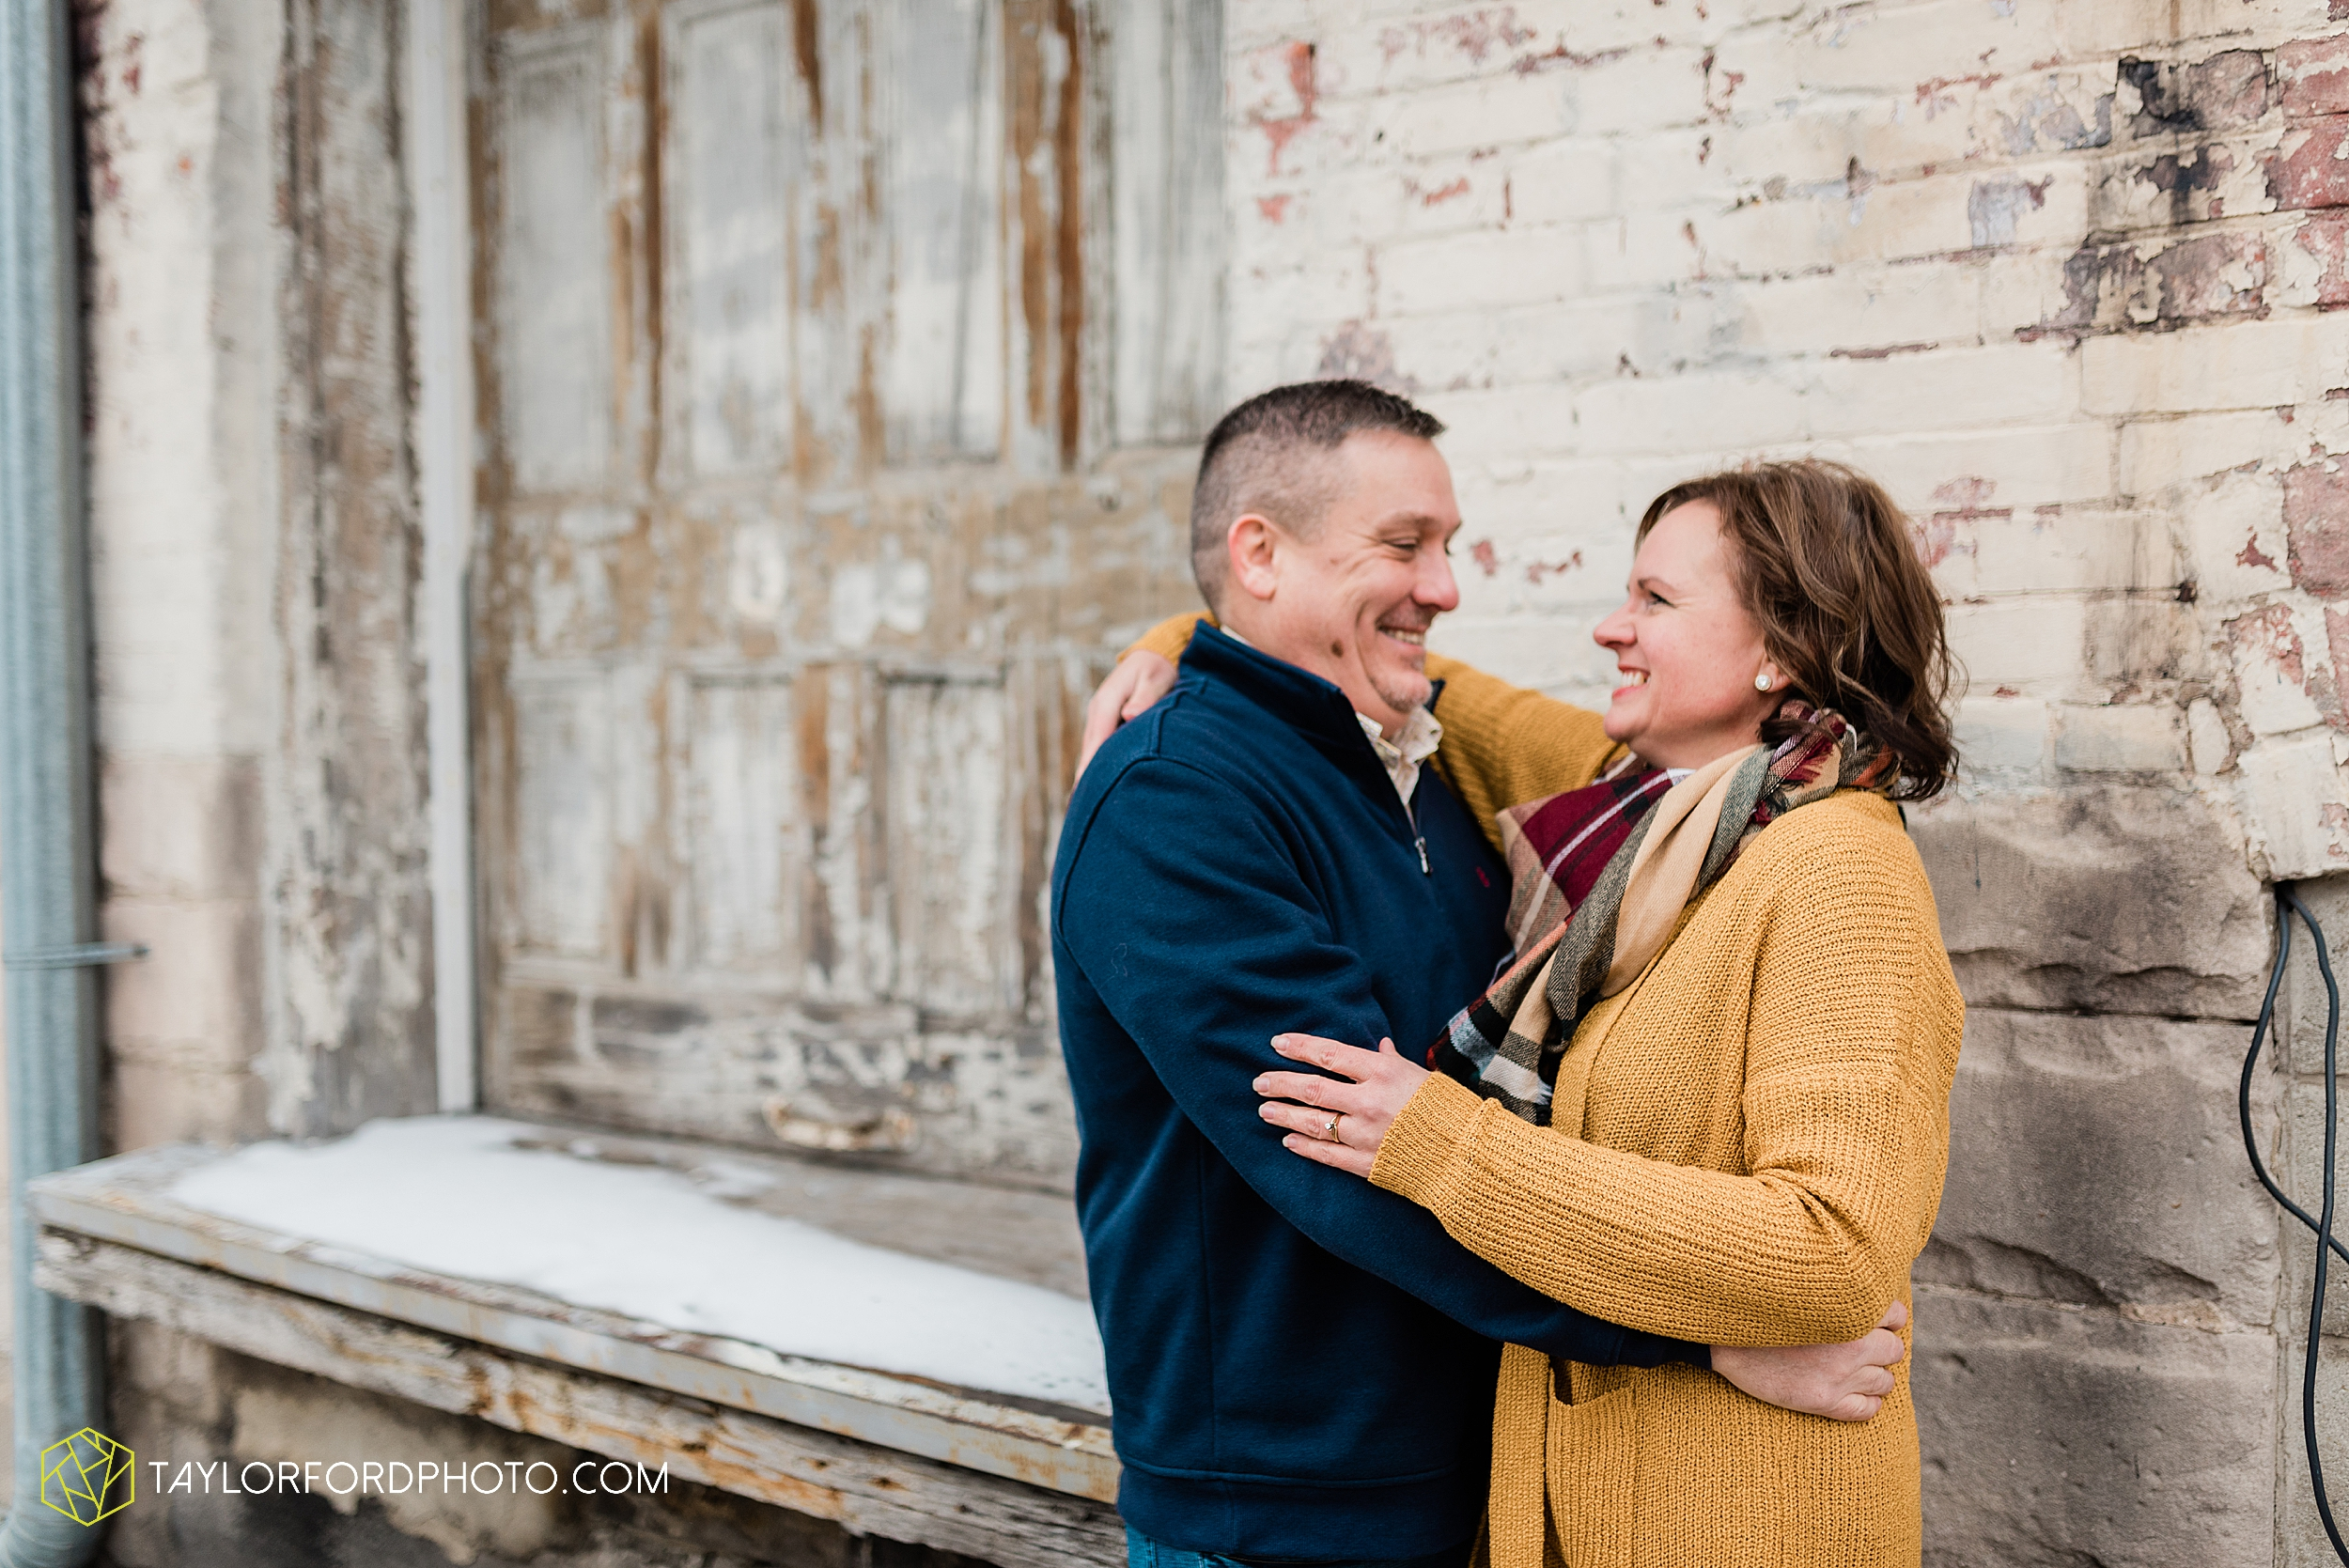 thompson-extended-family-van-wert-ohio-downtown-family-photography-taylor-ford-hirschy-photographer_2094.jpg